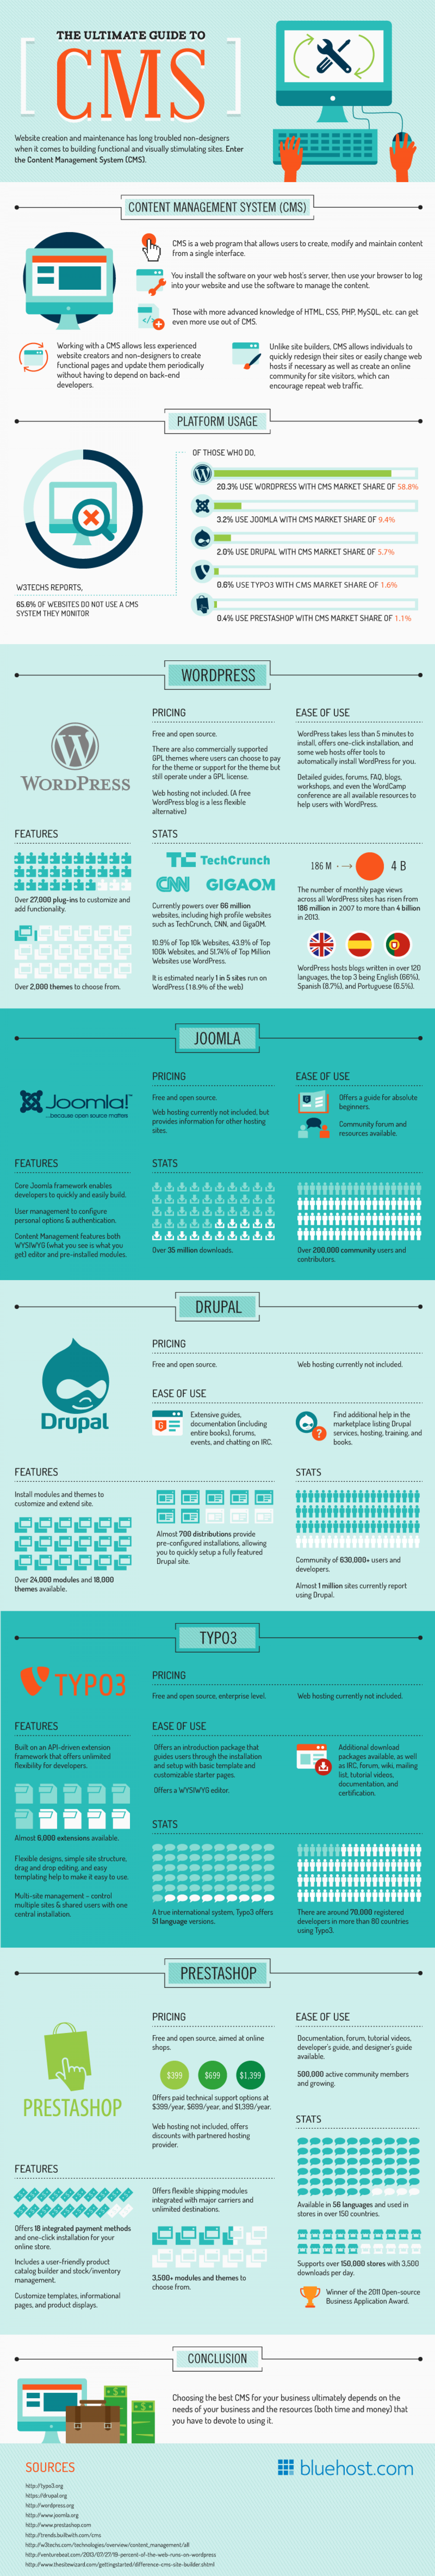 The Ultimate Guide to CMS Infographic